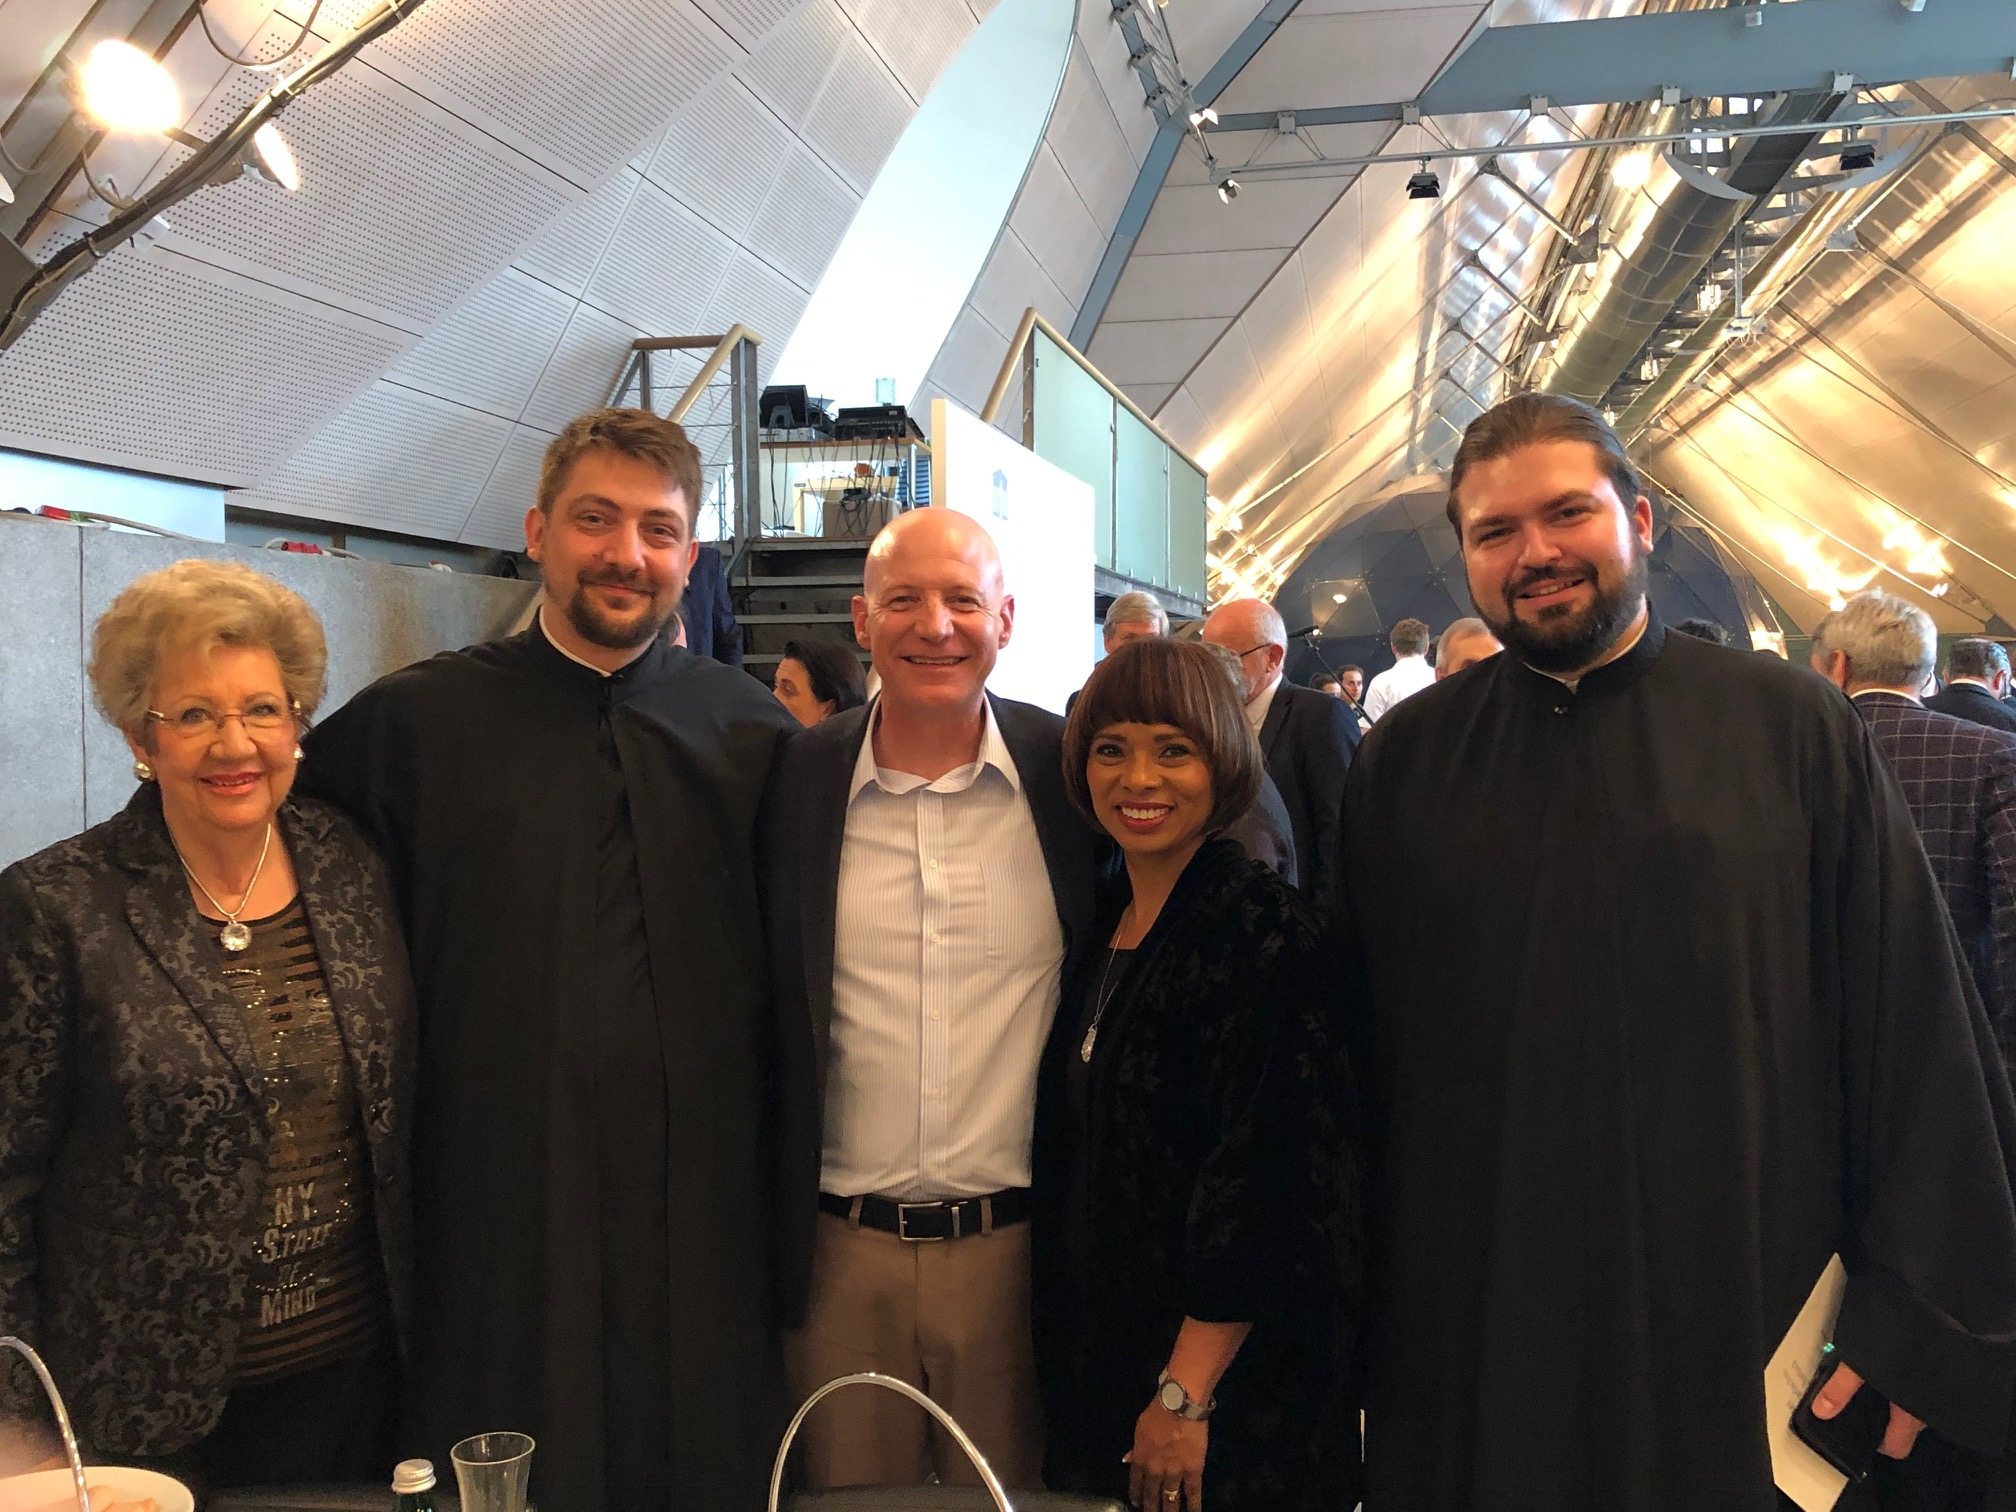 With our host Juliana Bosma and two Serbian Orthodox Priests at the Austrian National Prayer Breakfast